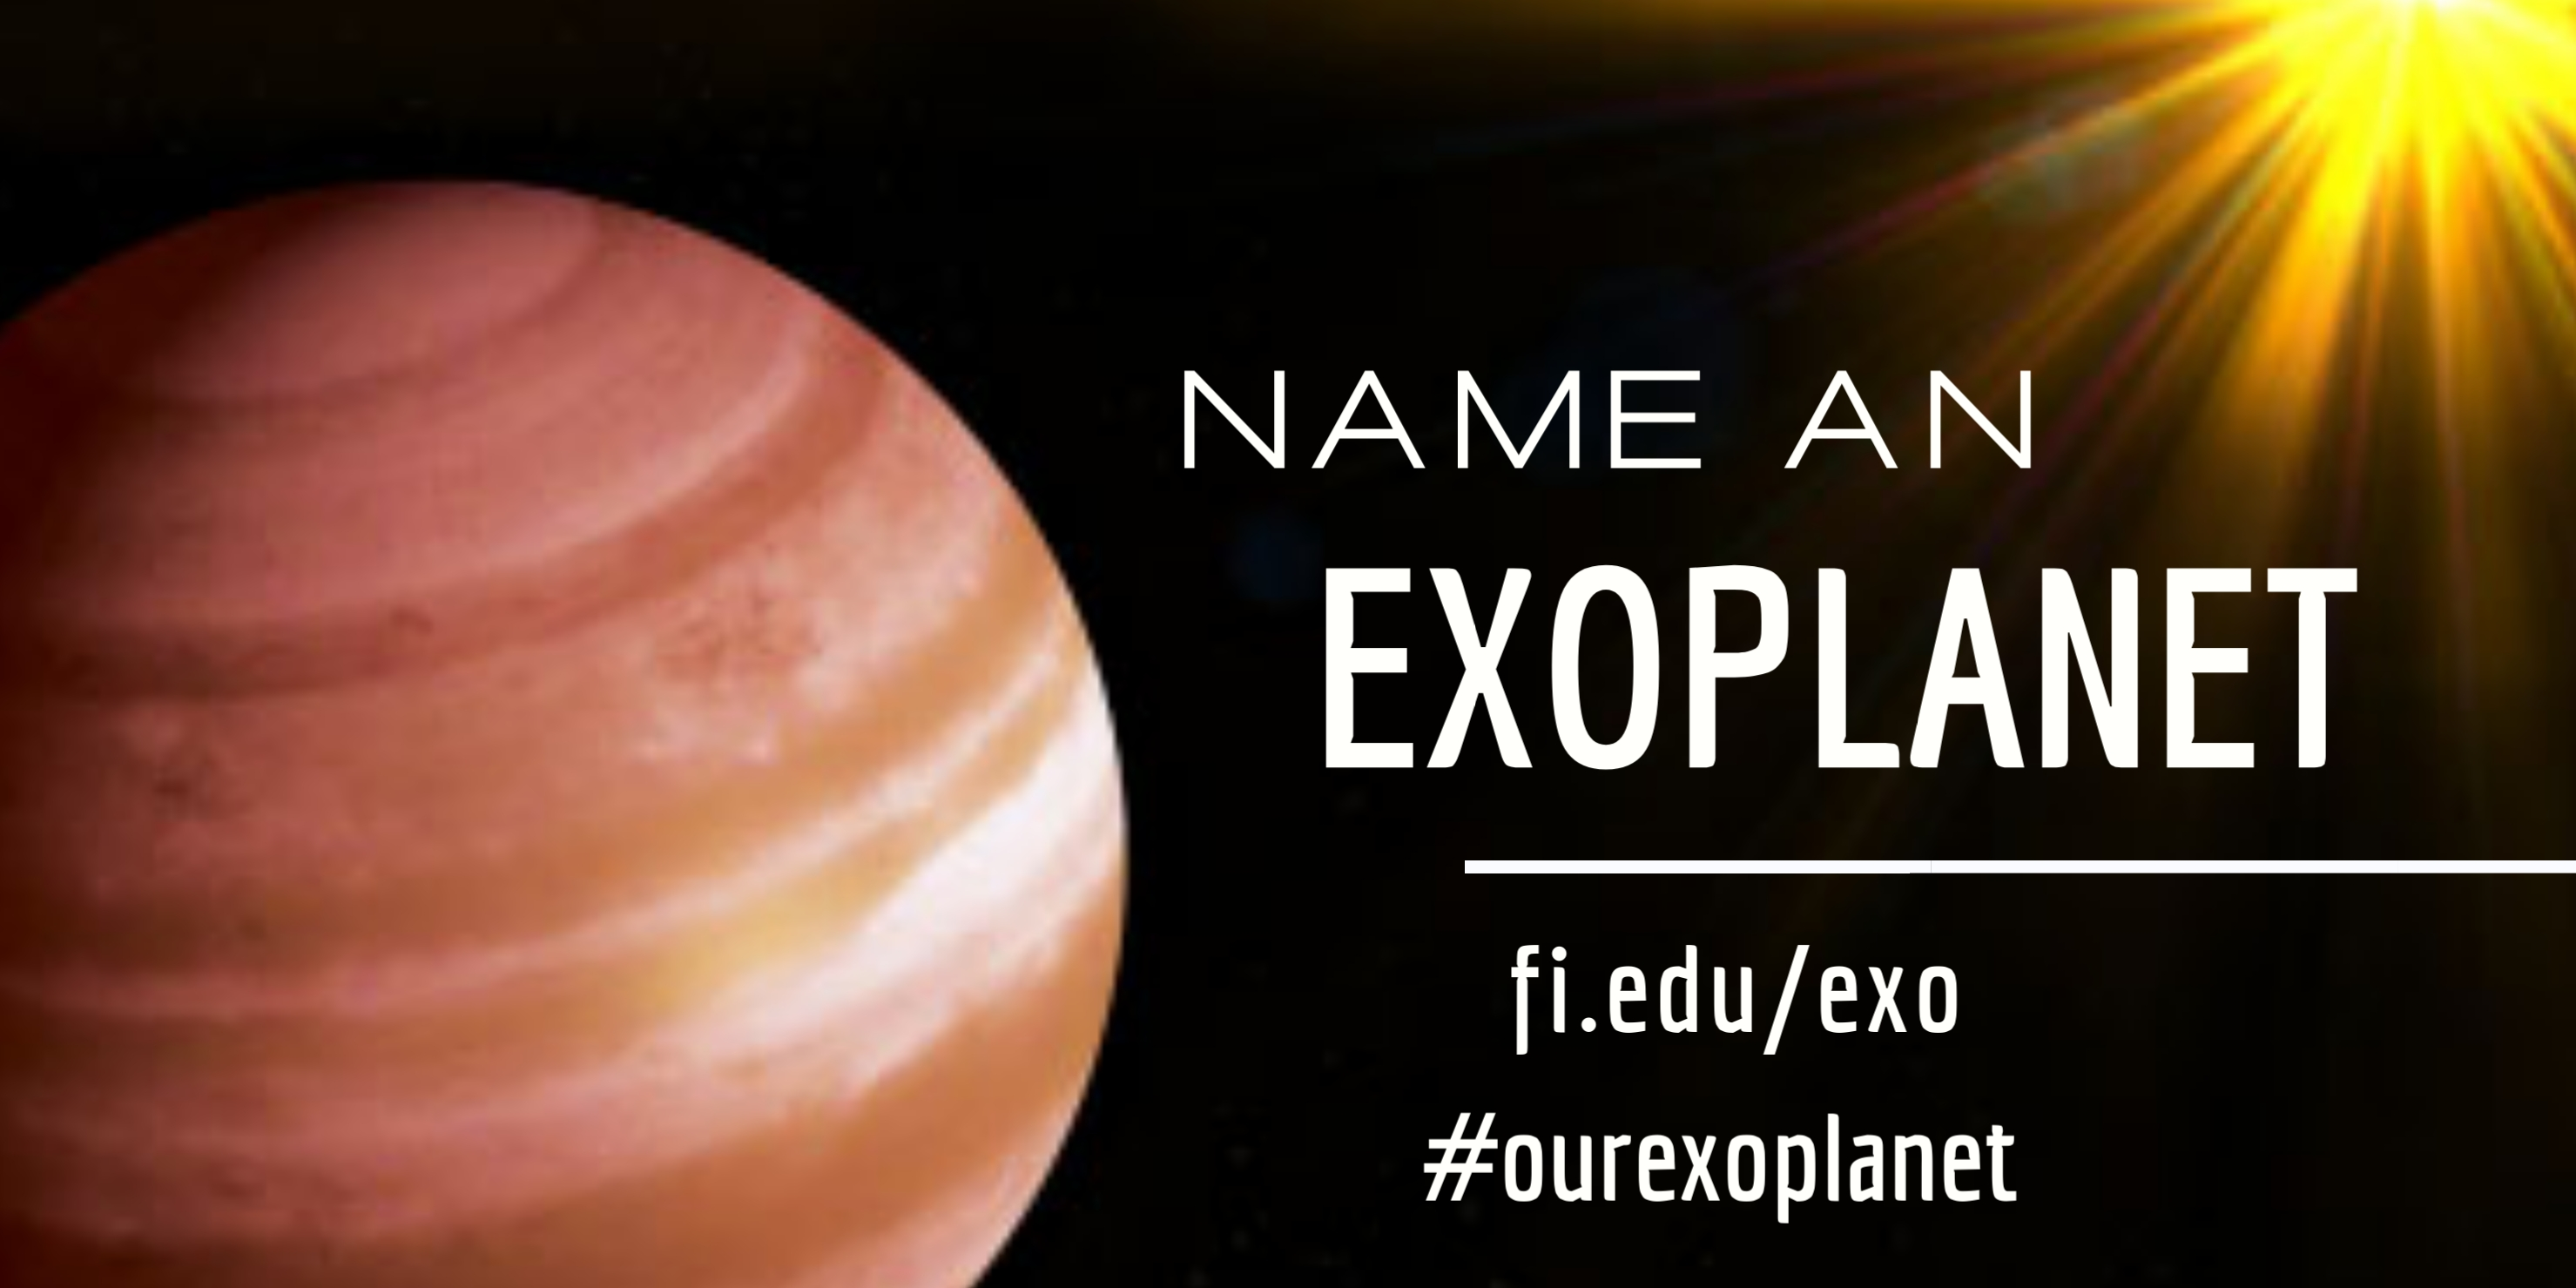 You Can Name An Exoplanet!